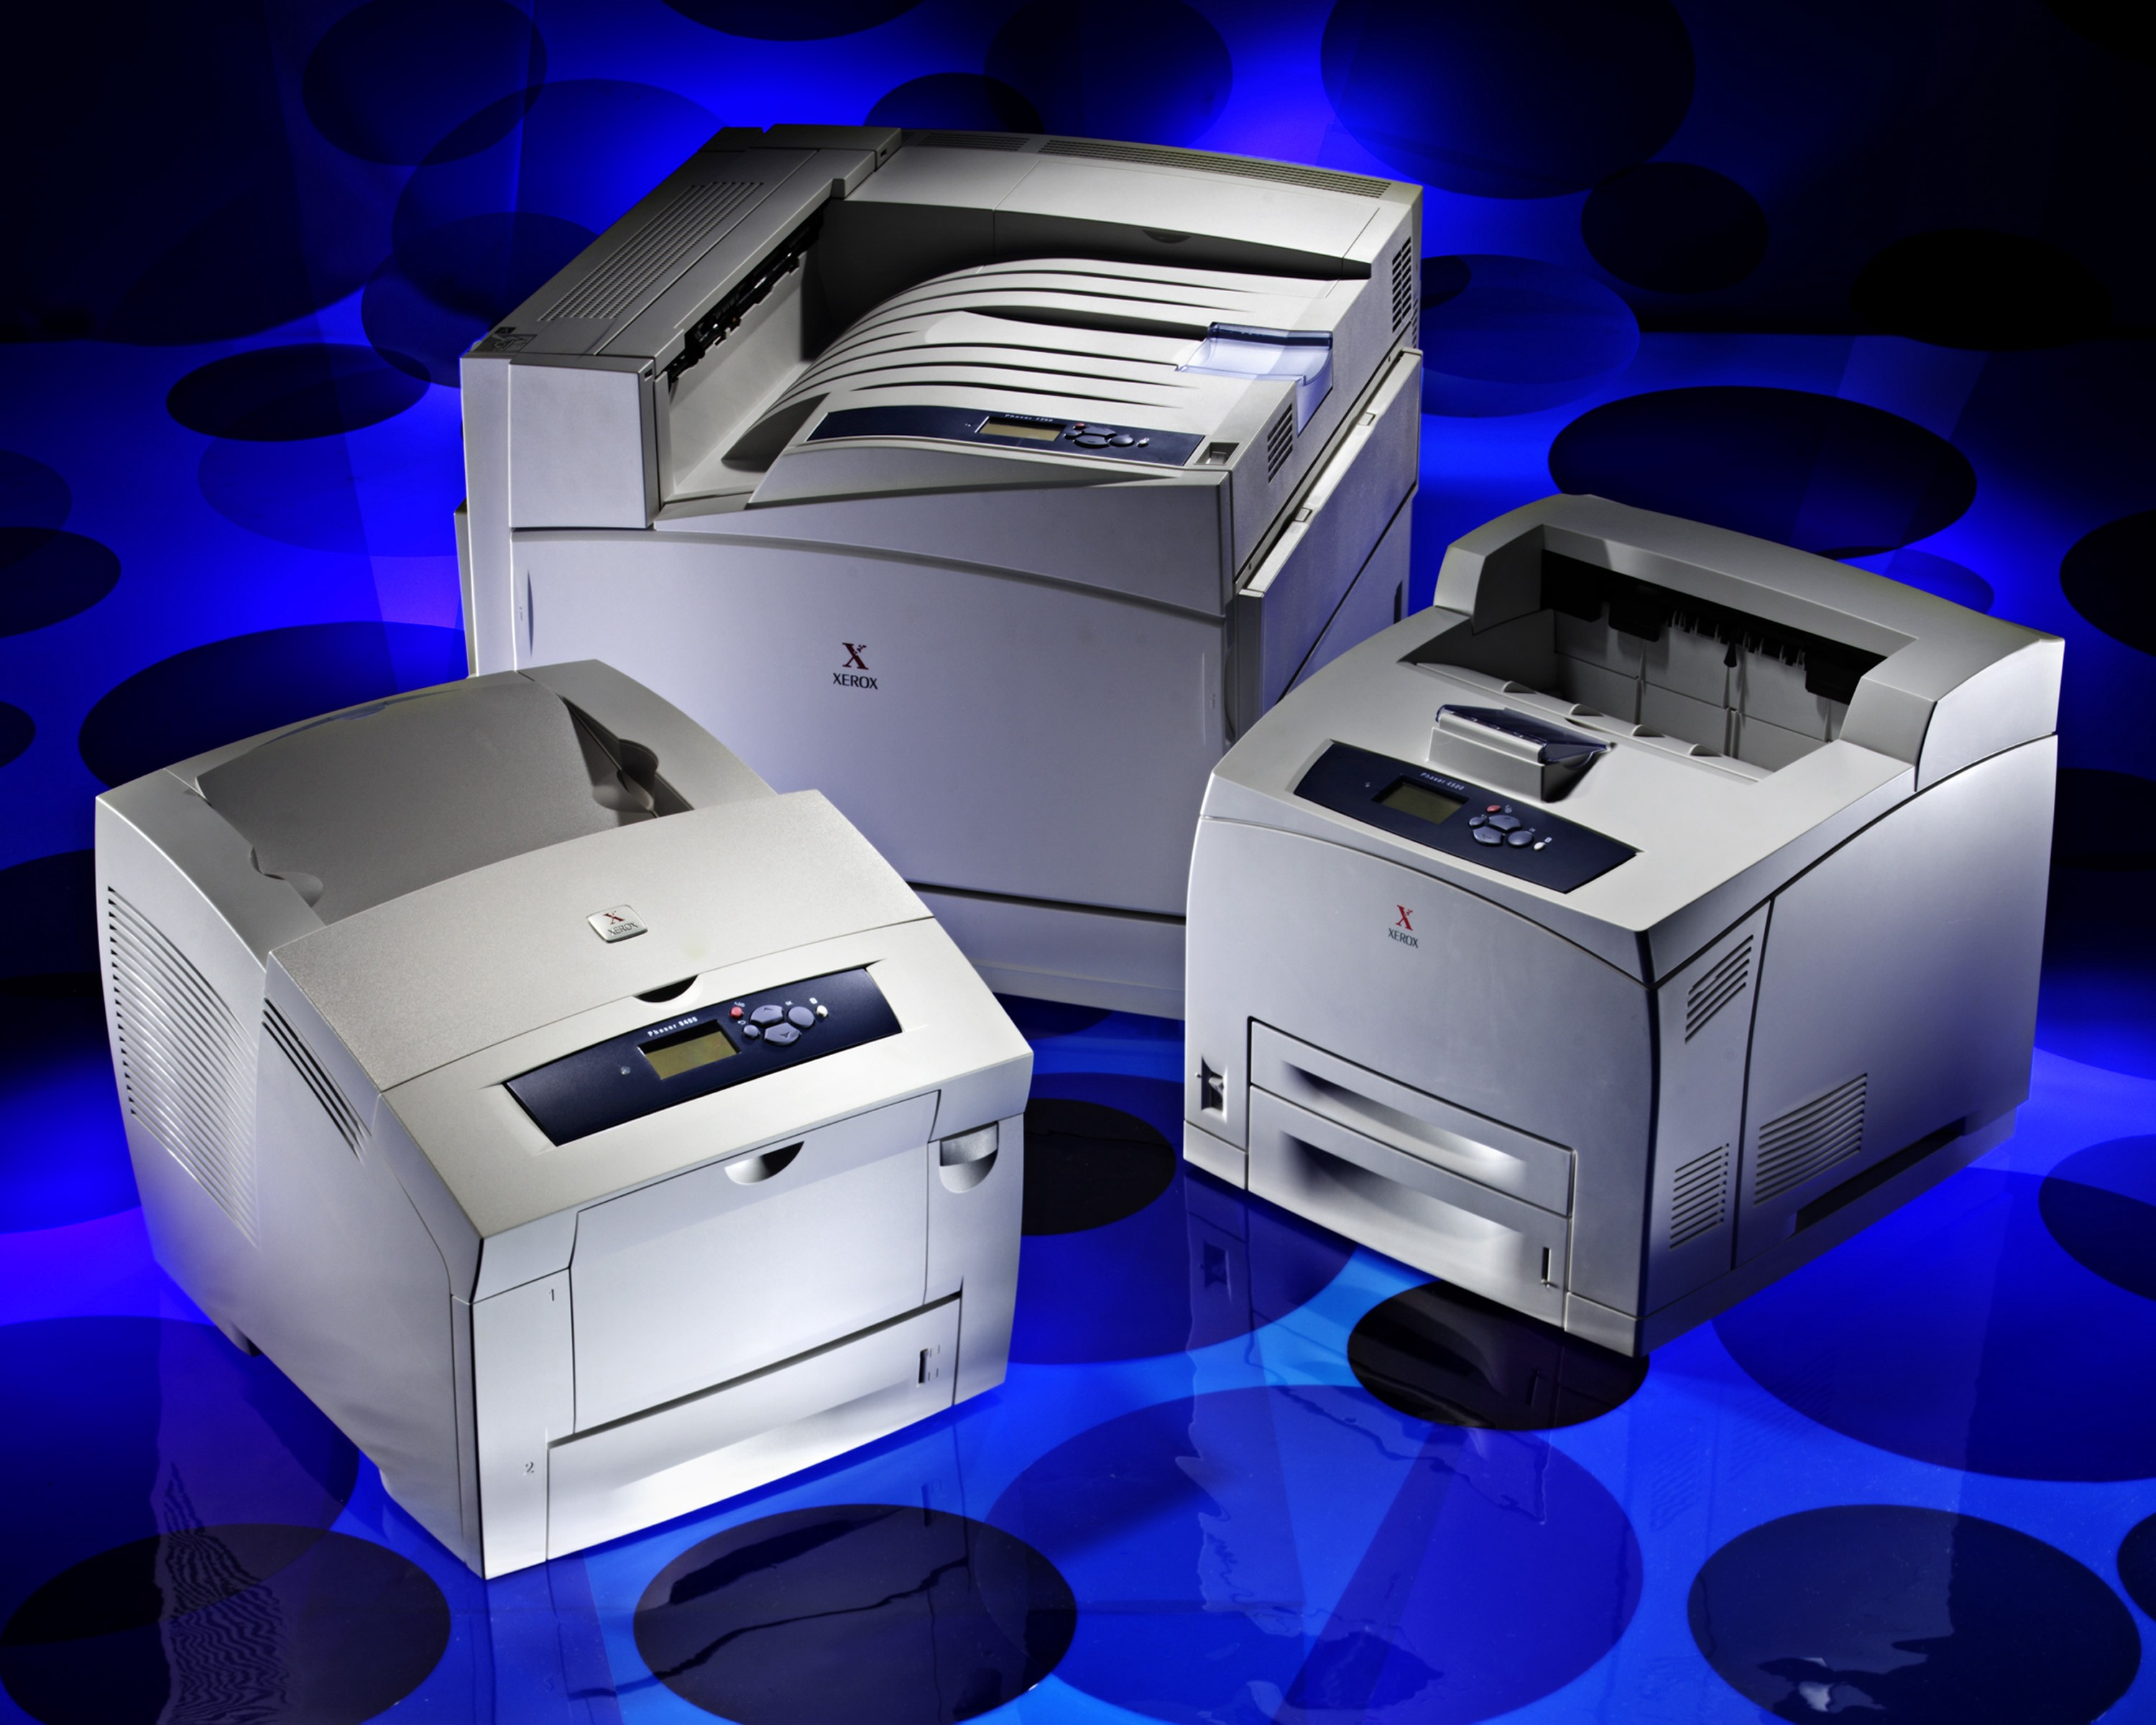 Photo Gallery From Xerox Including Product Shots